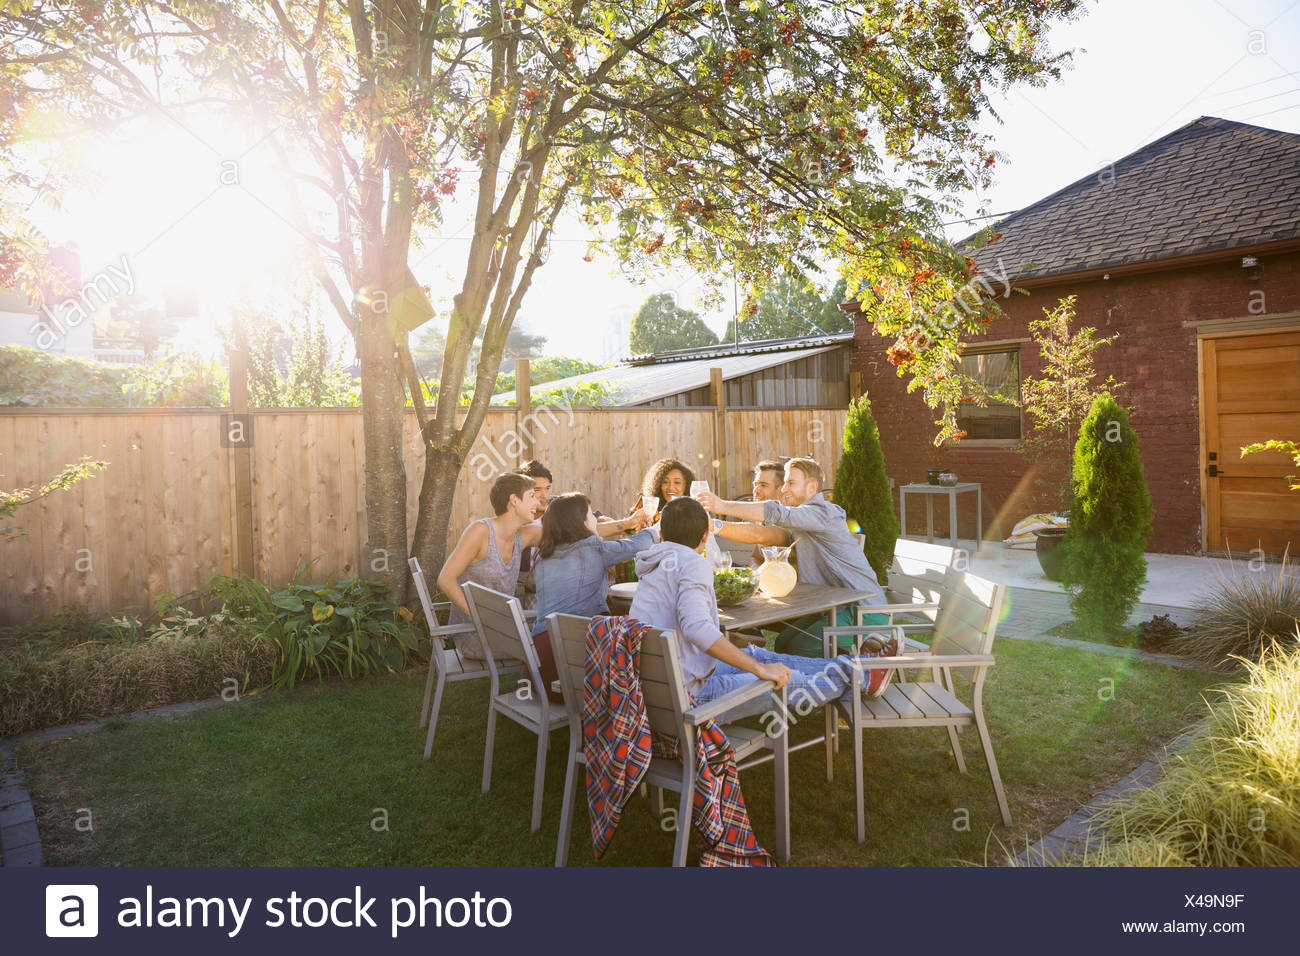 Friends toasting drinks at table in sunny backyard - Stock Image